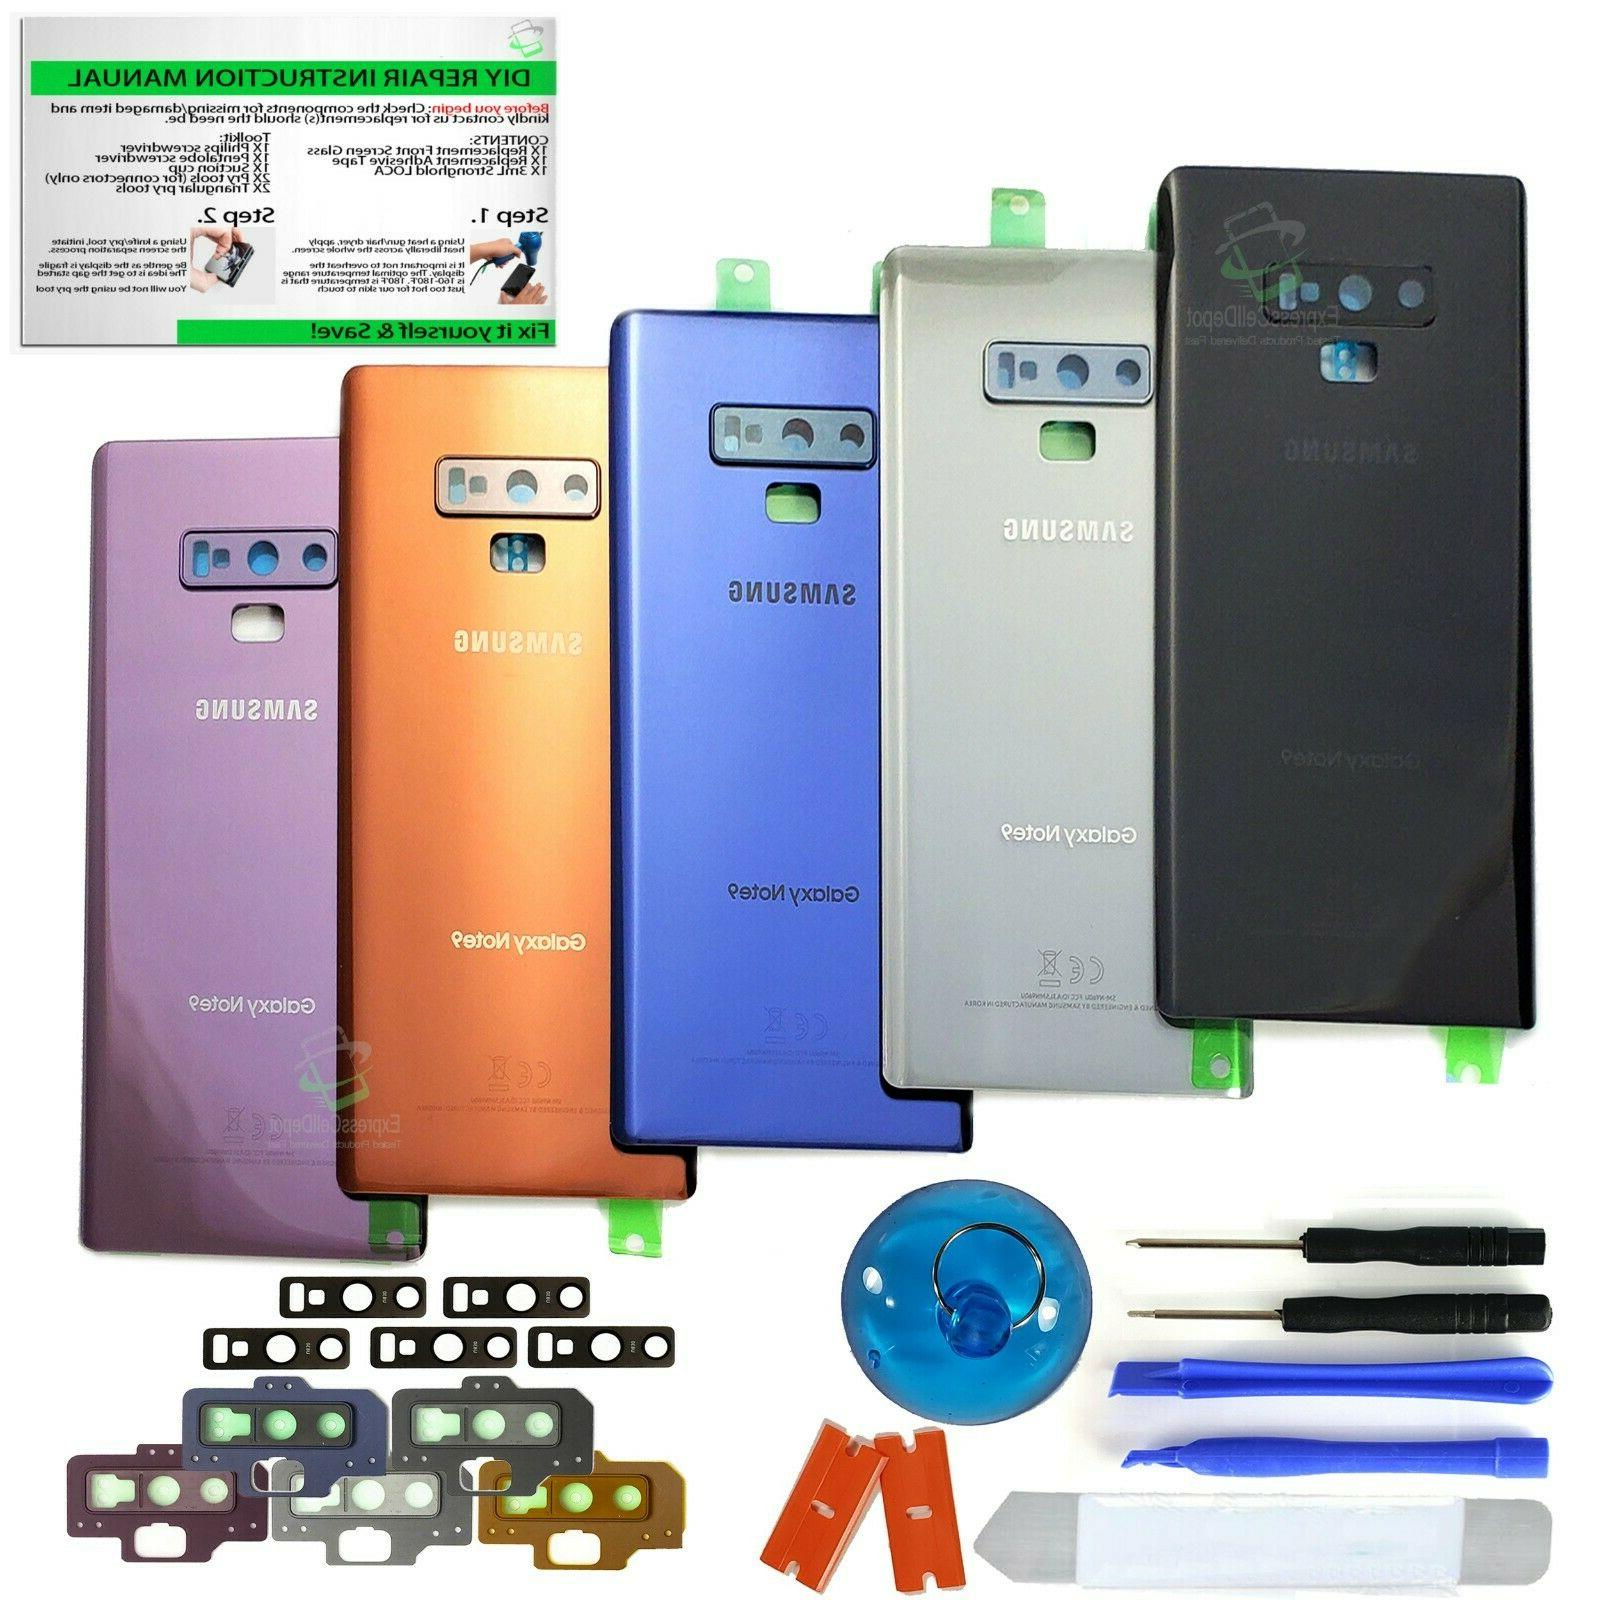 back glass replacement kit for samsung galaxy